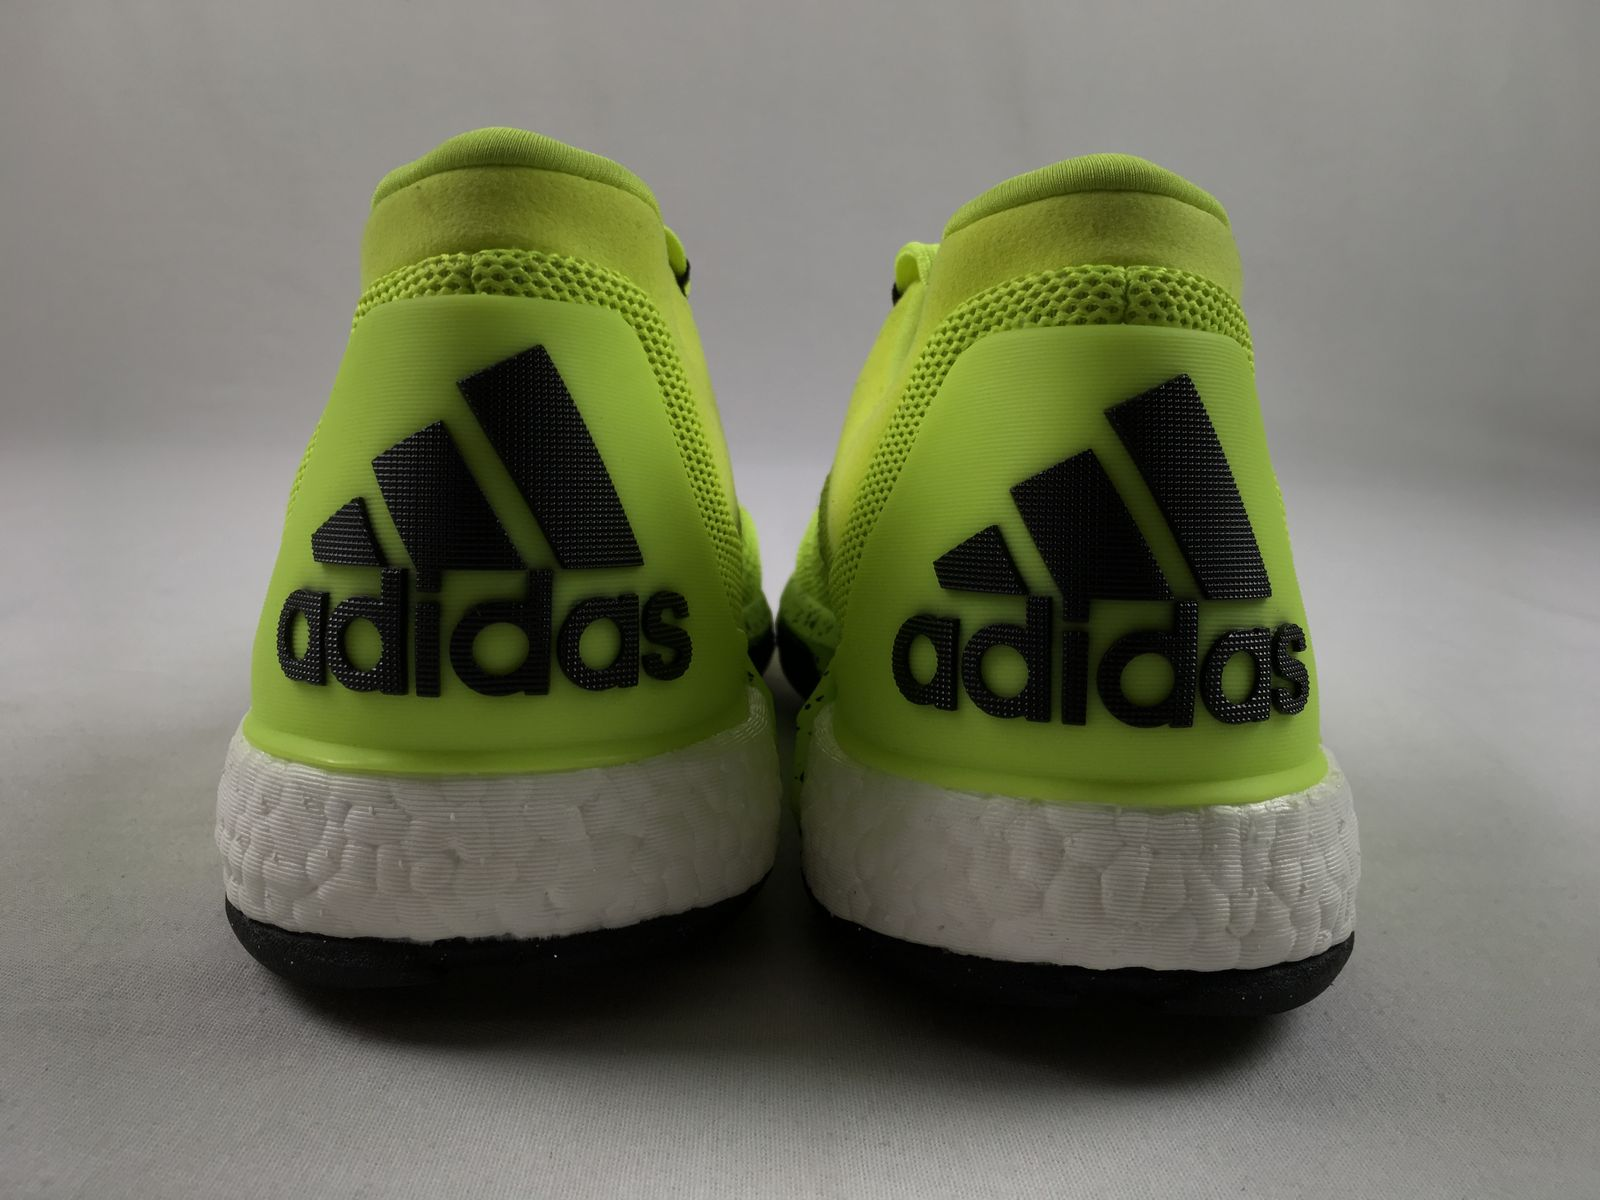 35720c7e373 ... closeout 3 of 7 new adidas 2015 crazylight boost lime green basketball  shoes mens 9.5 fc71c